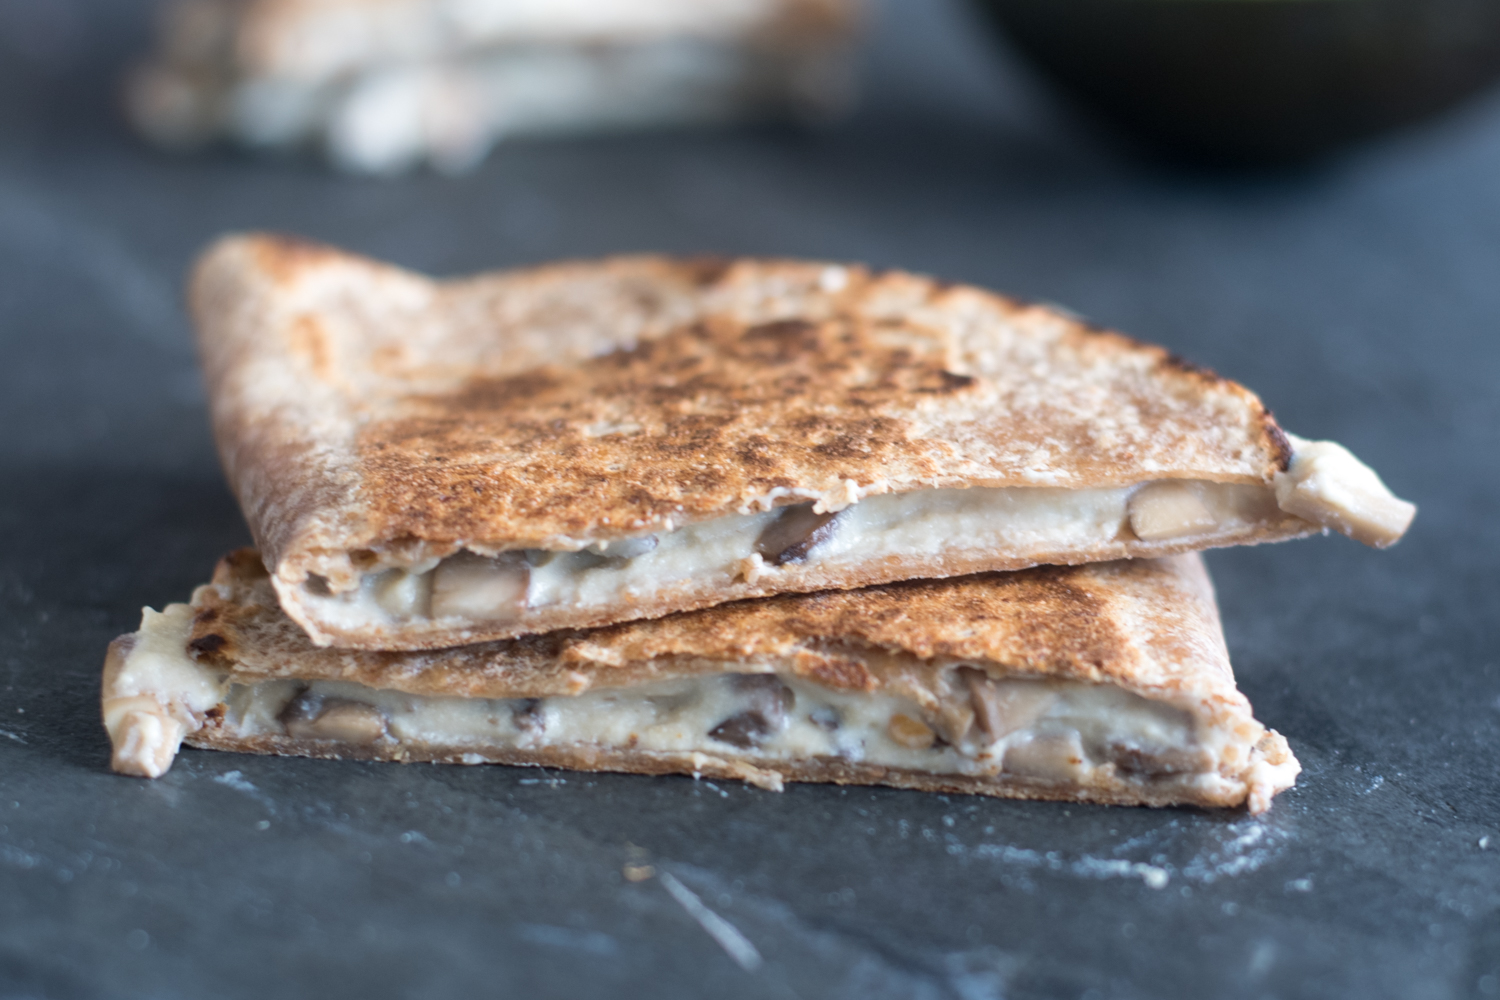 Gooey Mushroom Quesadillas from Frugal Vegan